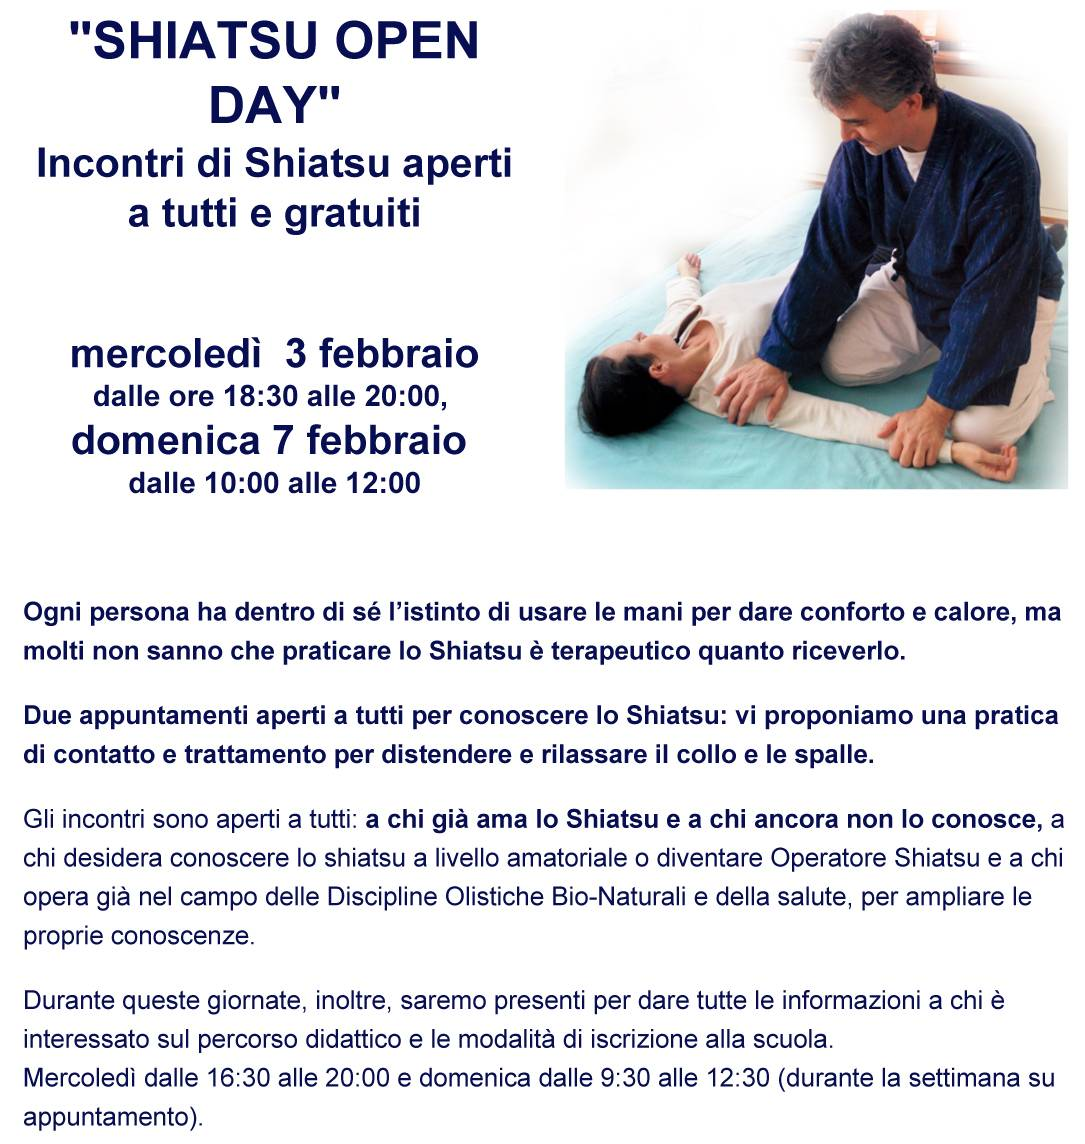 Orione news: Shiatsu open day